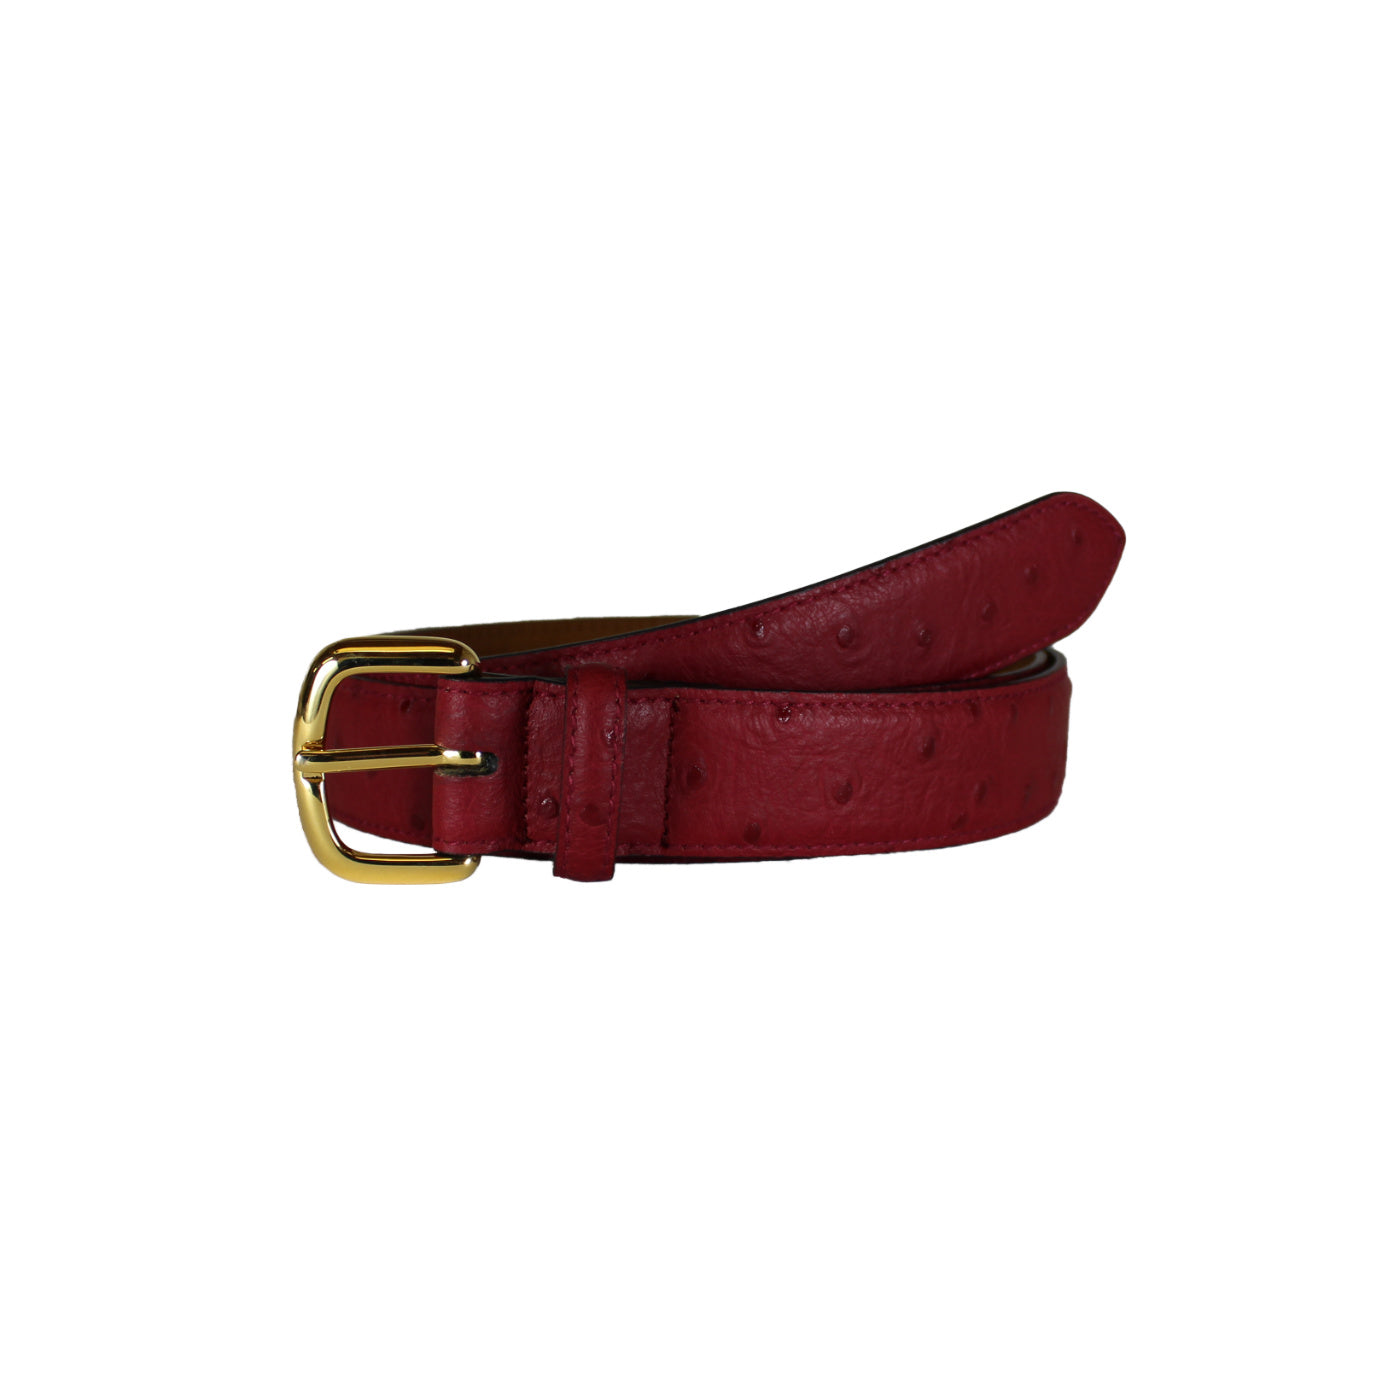 "Ostrich Stamp Red Dress Vegetable Tanned Leather Belt (Width 30mm - 1¼"")"